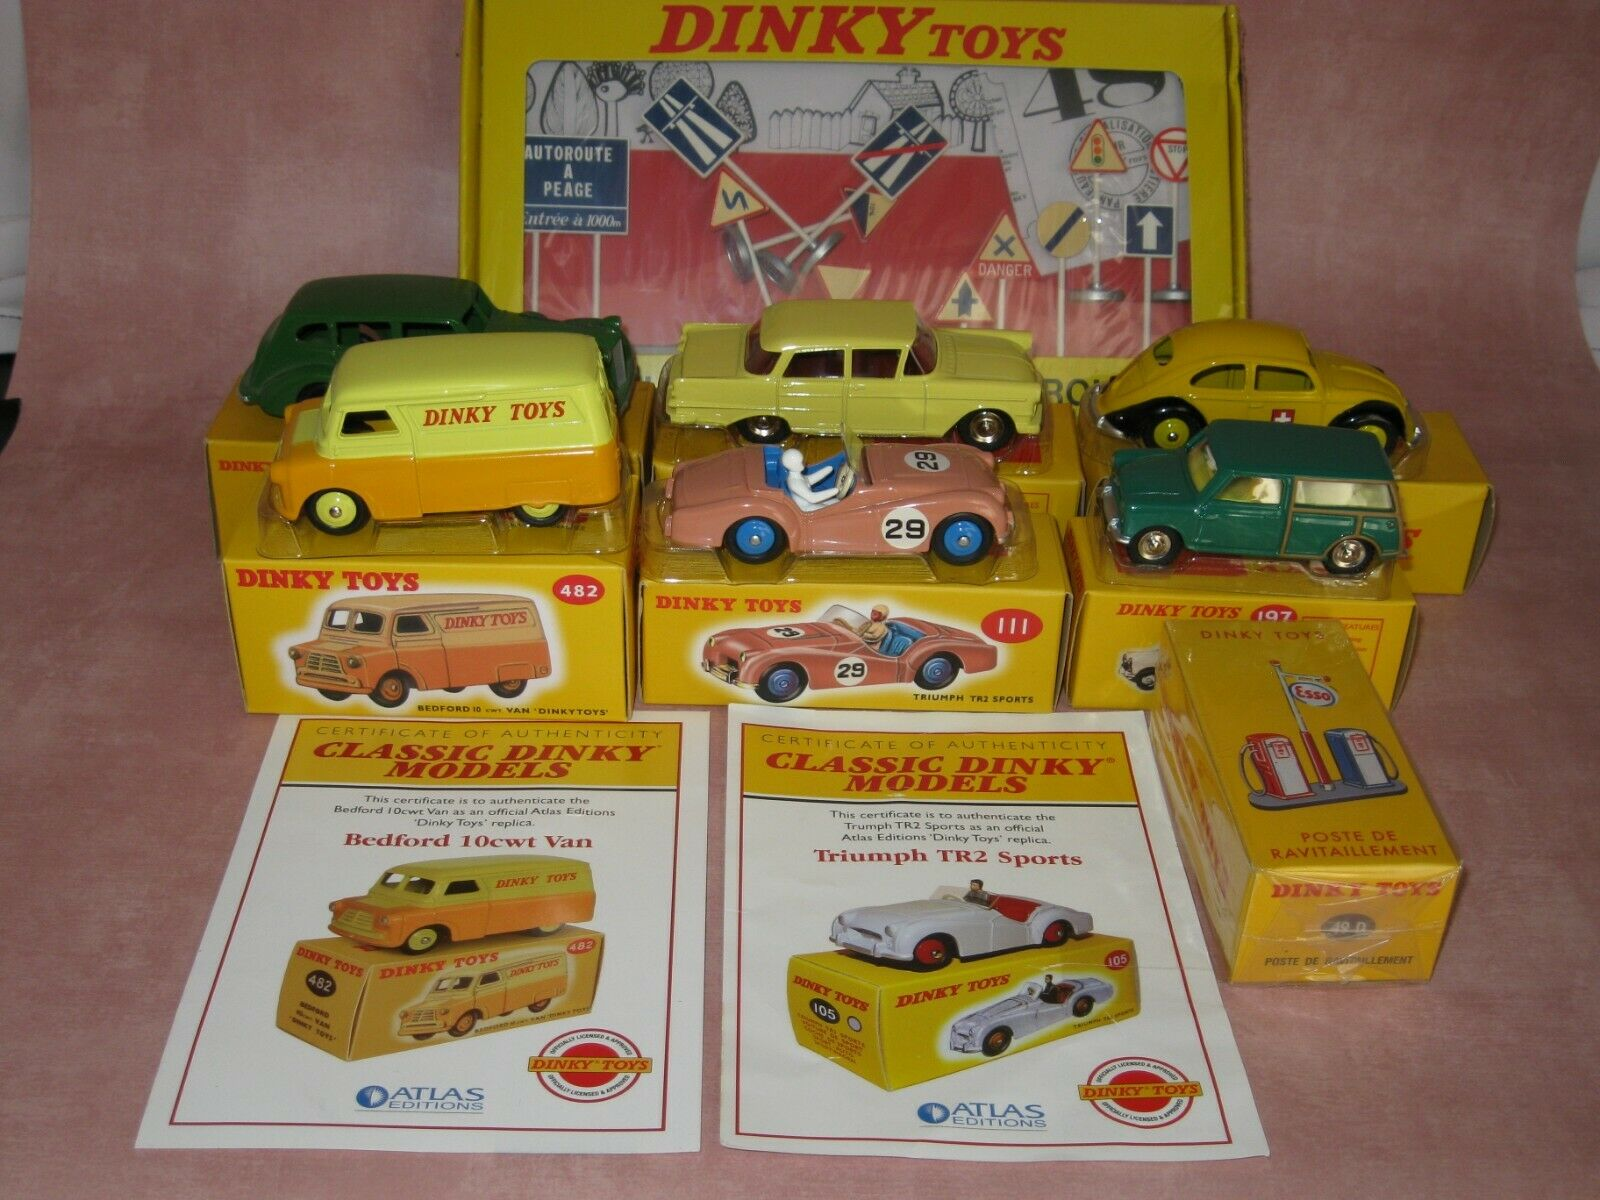 Atlas Dinky Toys Job lot of 8 items - unused - boxed